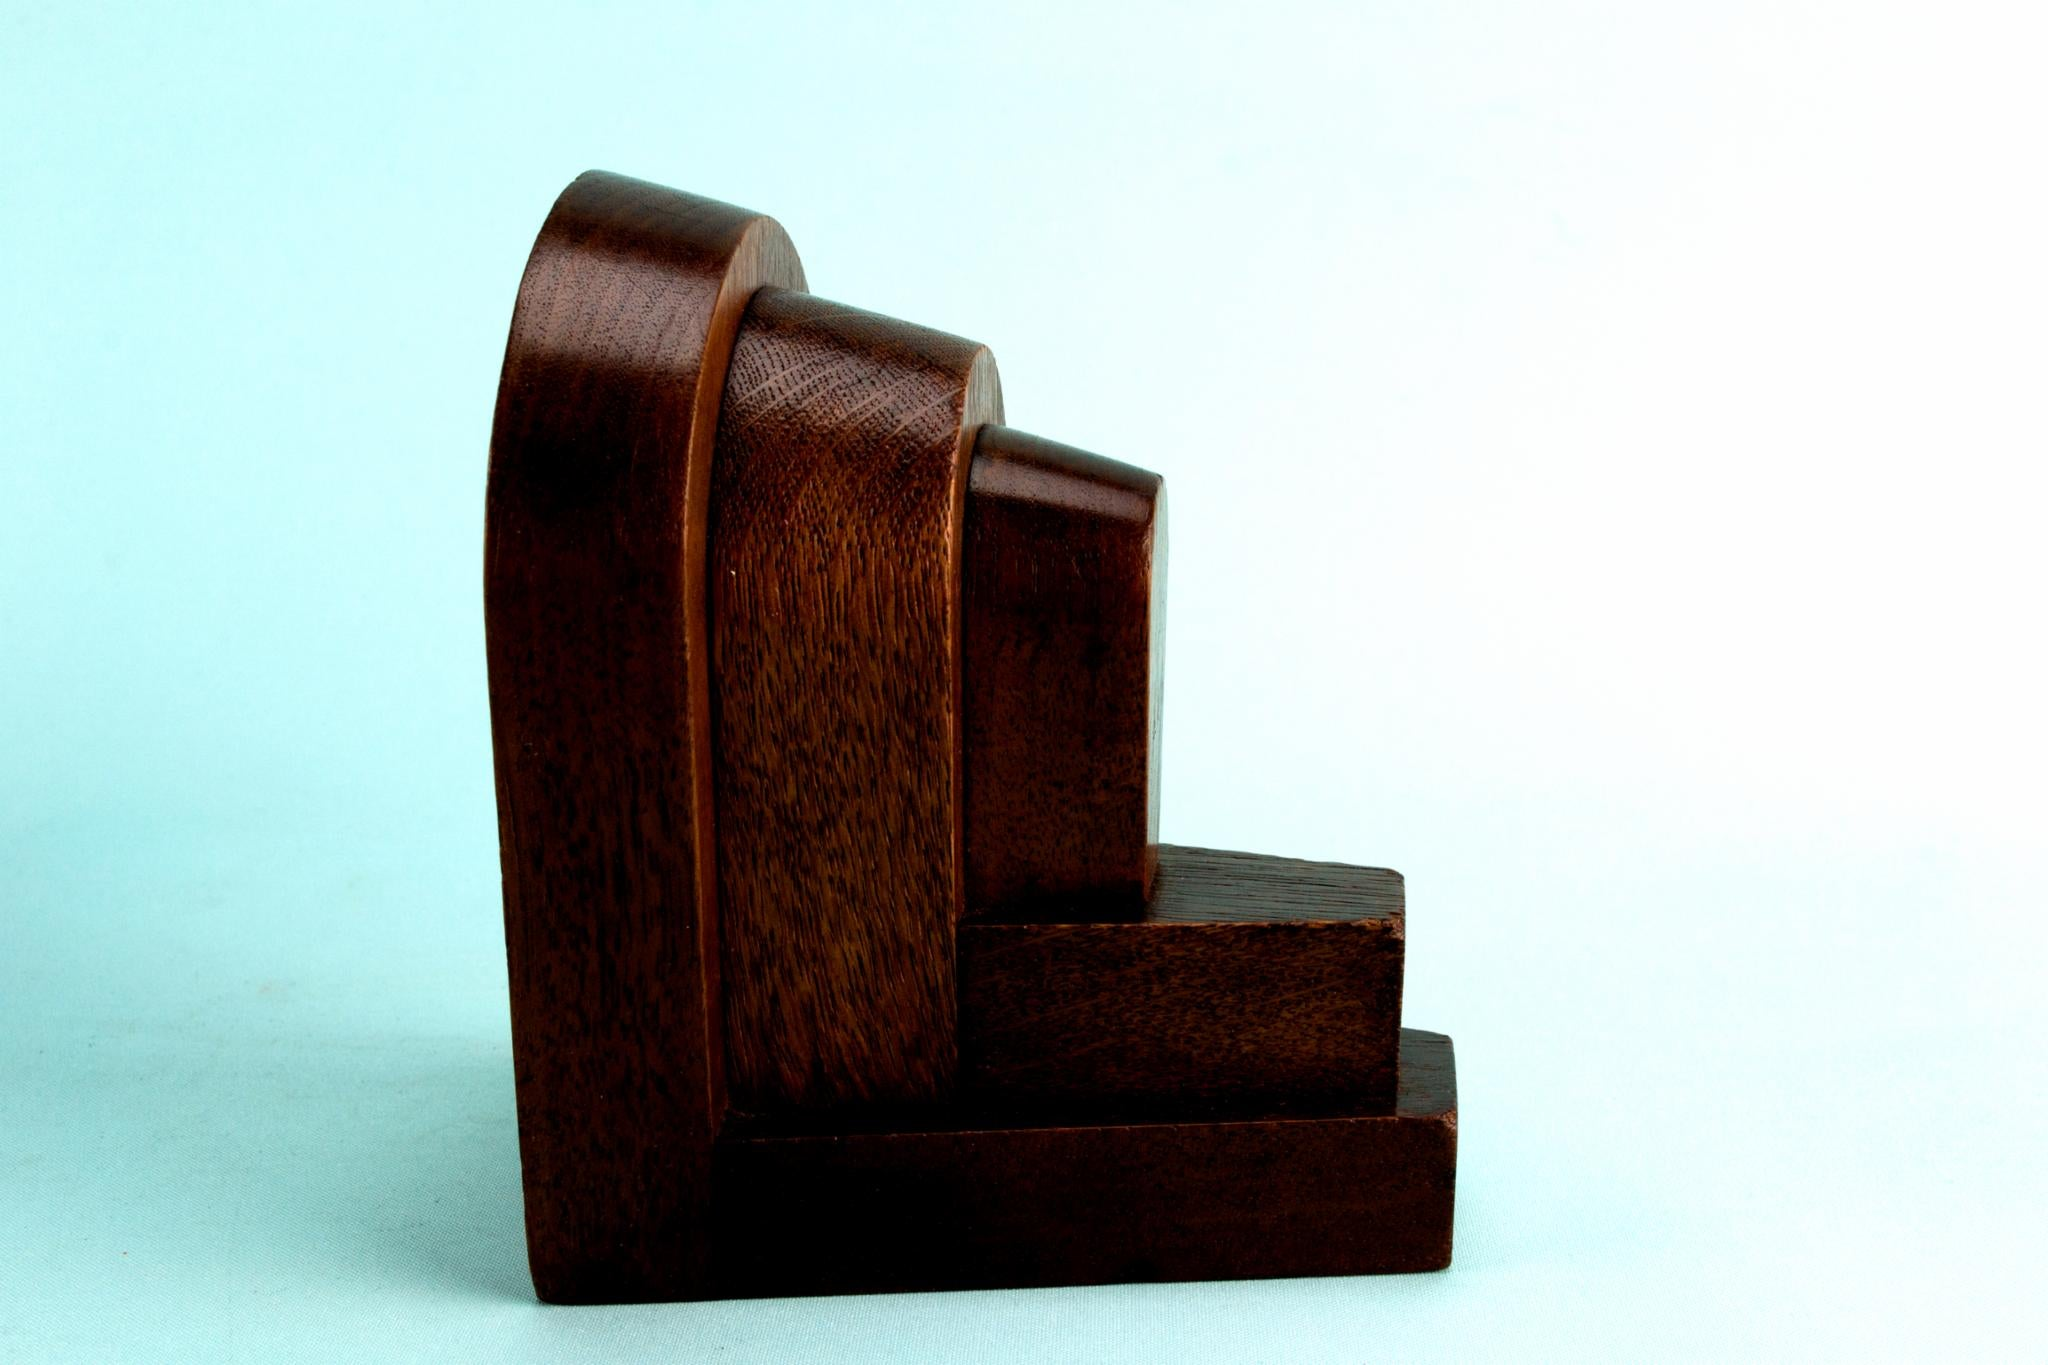 1960s Mid-Century Modern Wooden Bookends